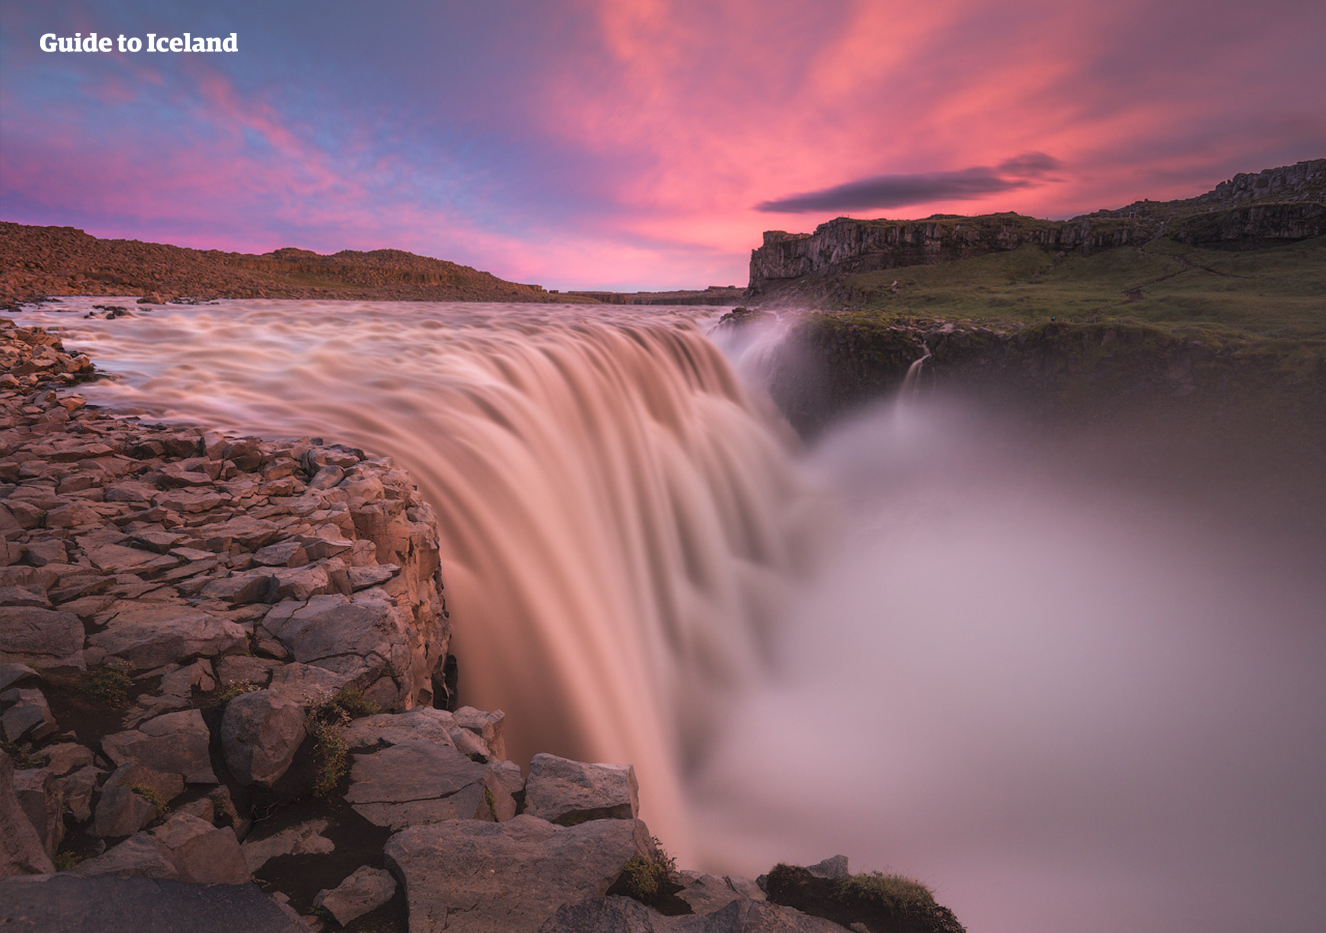 In northern Iceland you can find Dettifoss, a roaring and awe-inspiring waterfall, rumoured to be the most powerful cascade in Europe